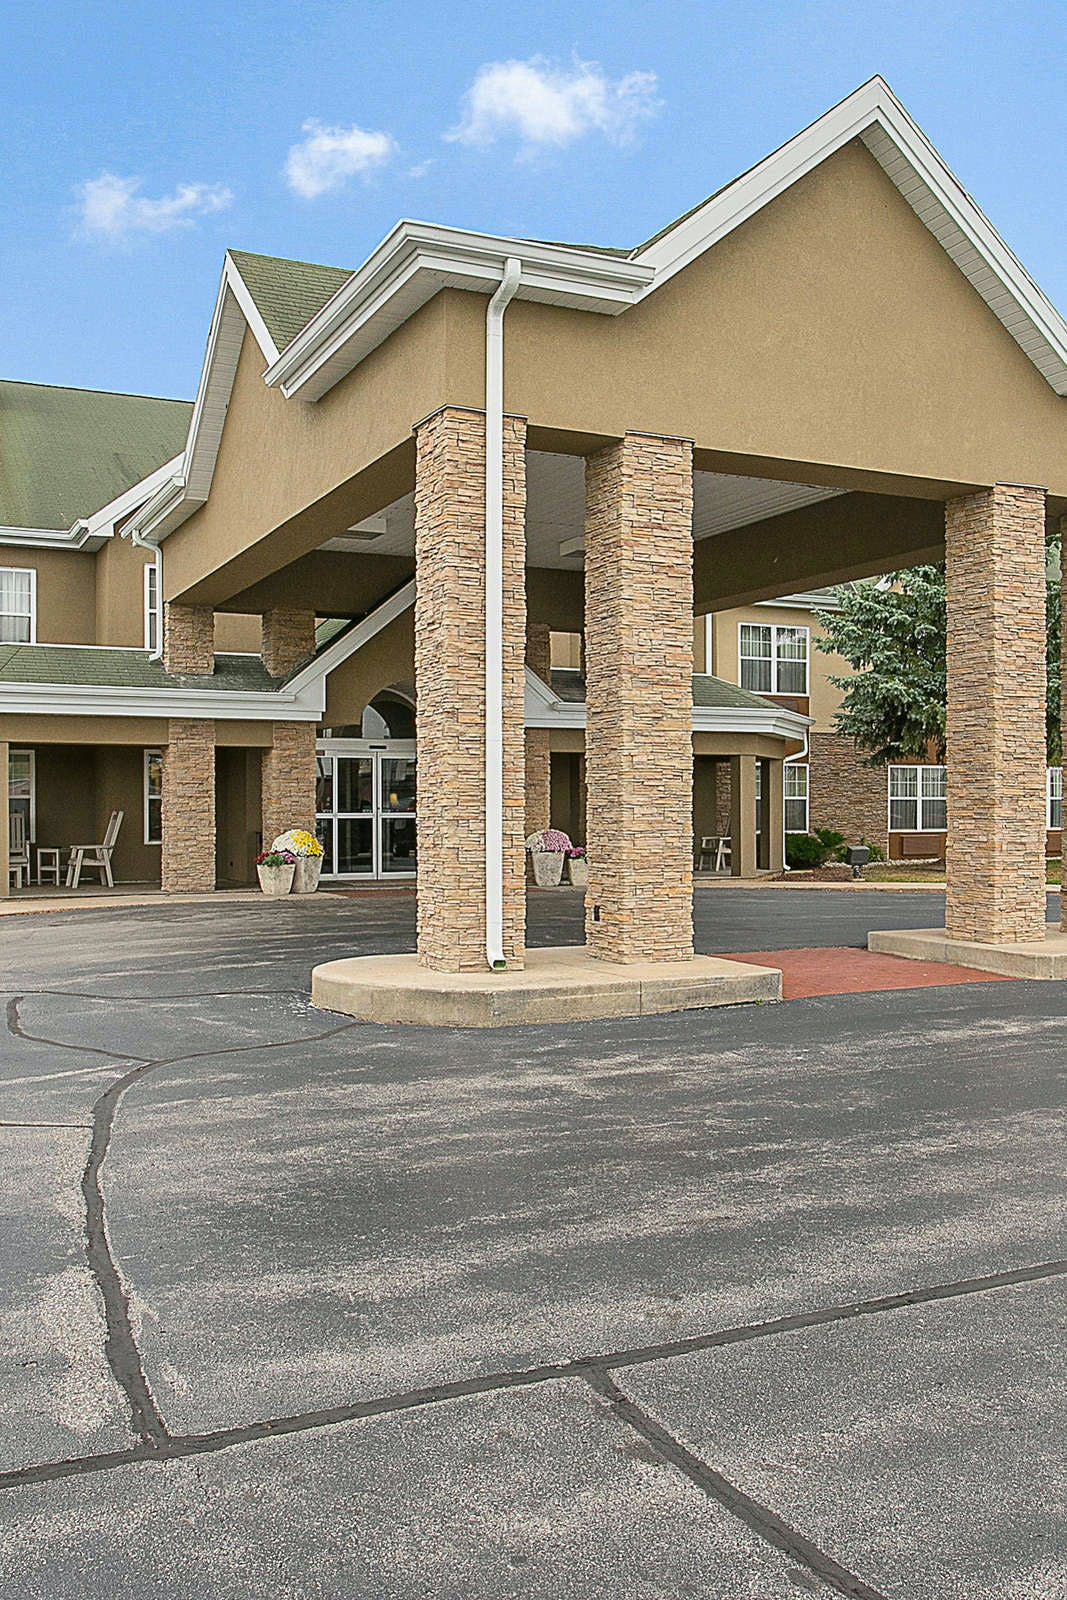 Country Inn & Suites by Radisson, Green Bay, WI